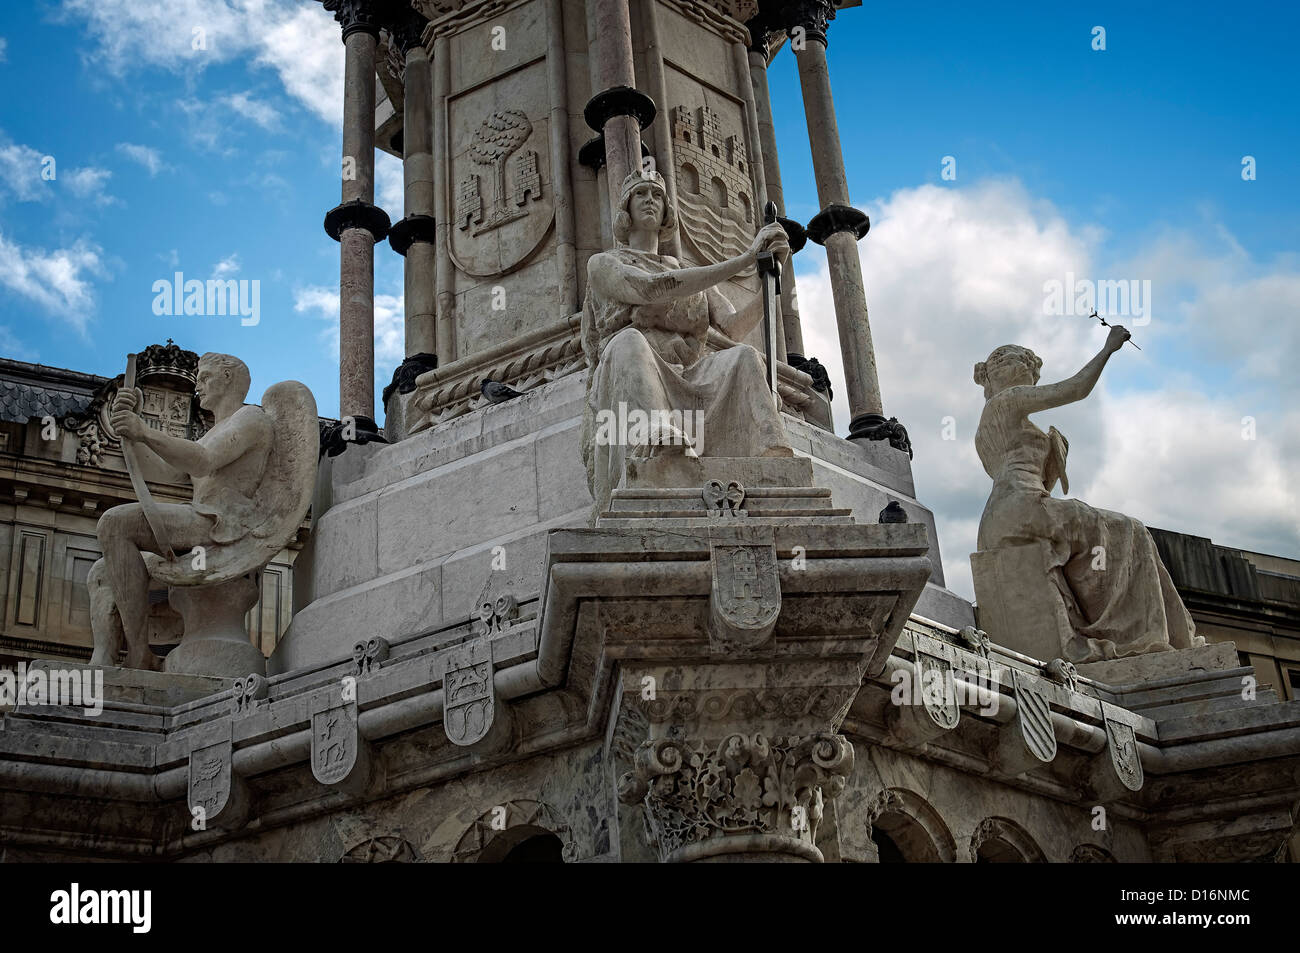 Monument to the Fueros of Navarra in the city of Pamplona, Spain, Europe - Stock Image